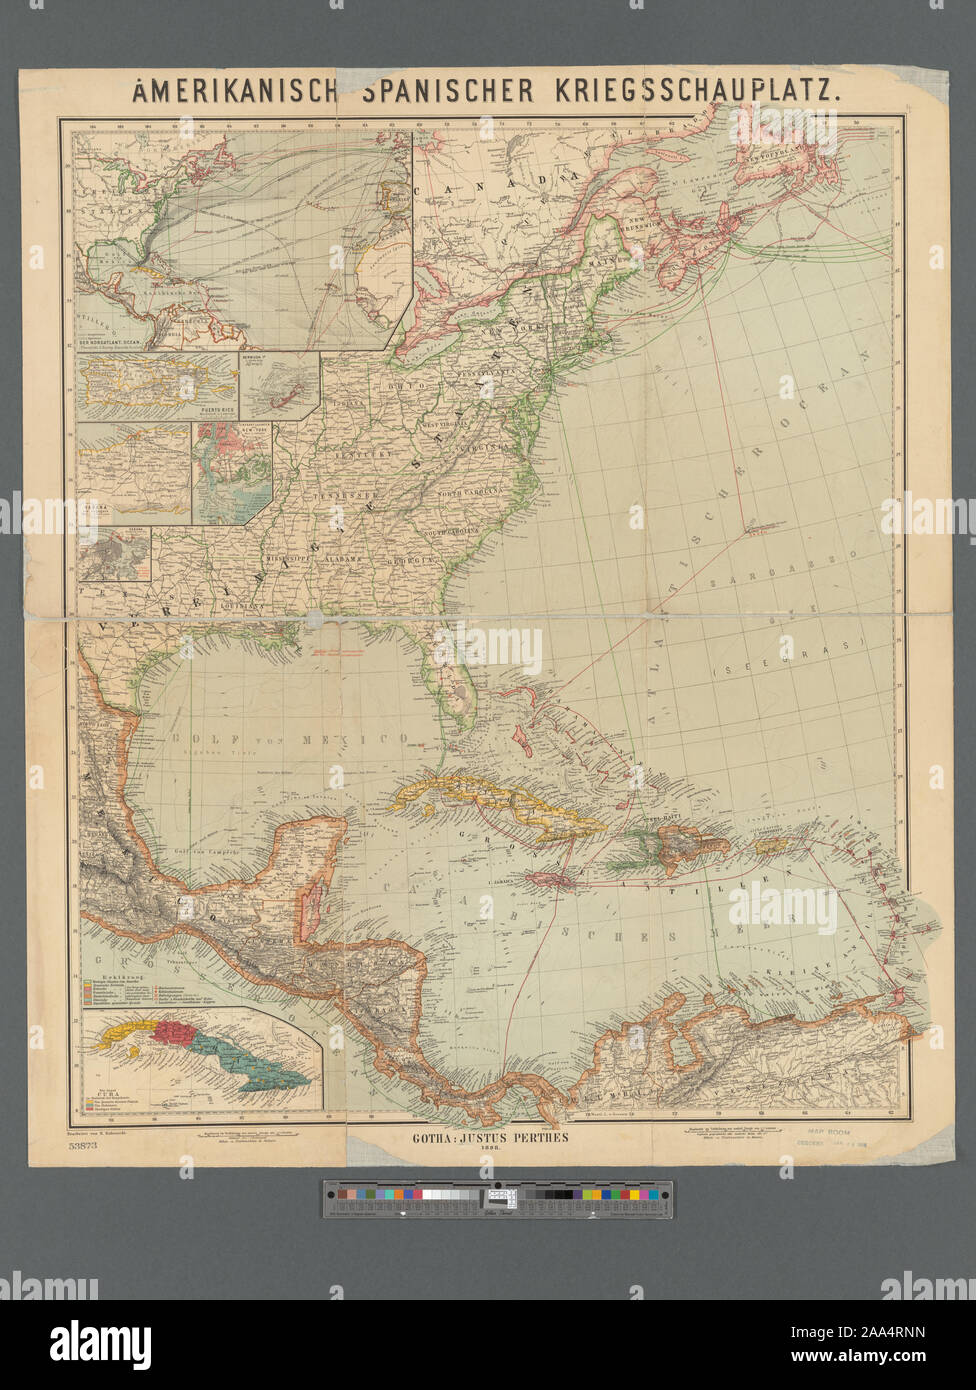 Shows submarine cables, military bases, and territories in ...